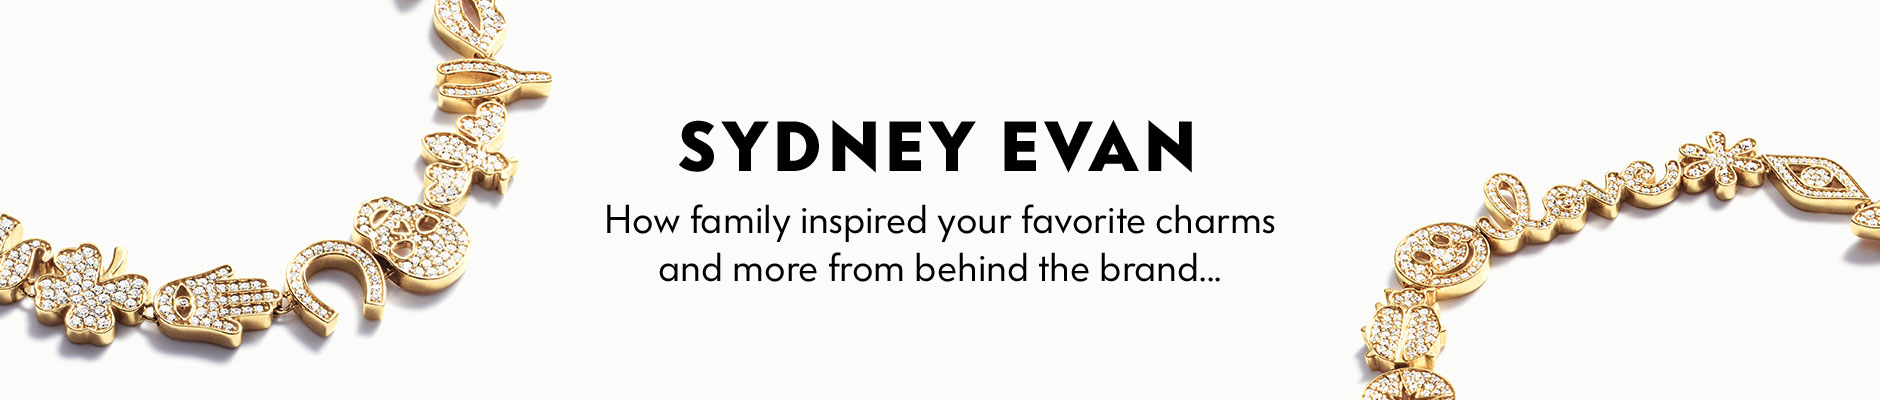 Sydney Evan - How family inspired your favorite charms and more from behind the brand...